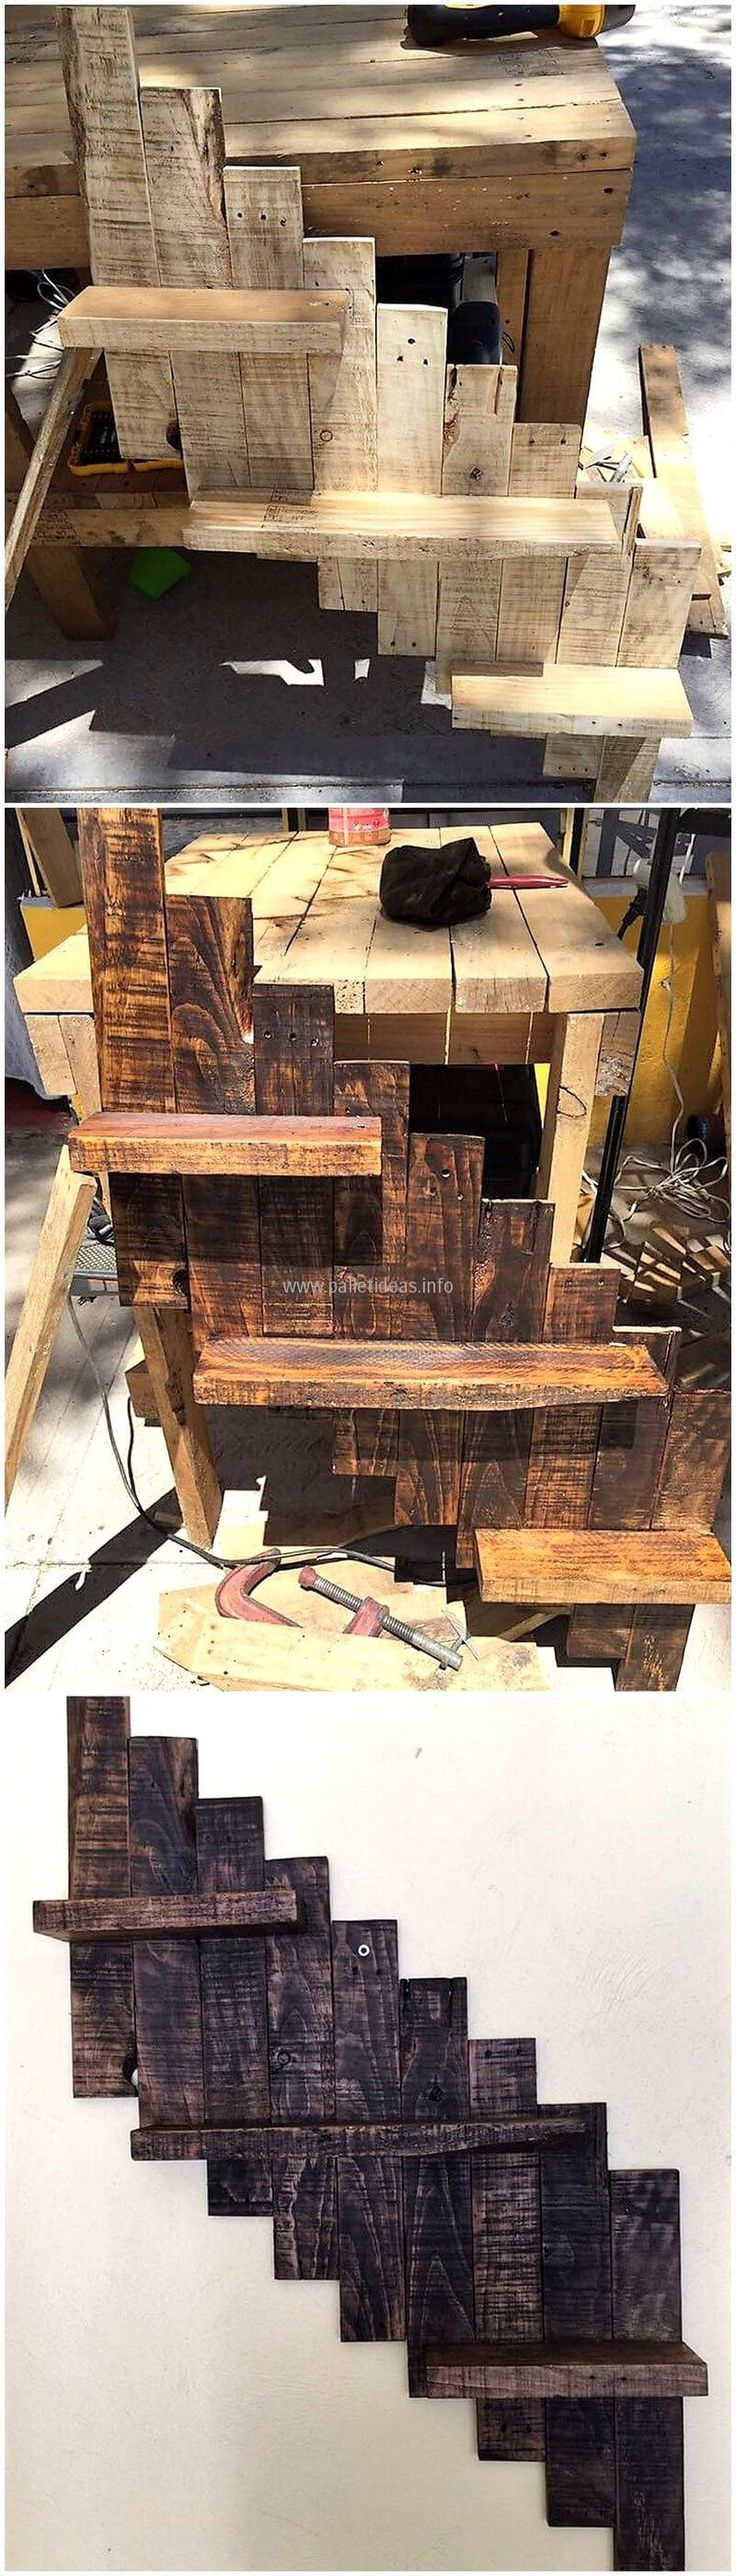 wood pallet wall shelving art